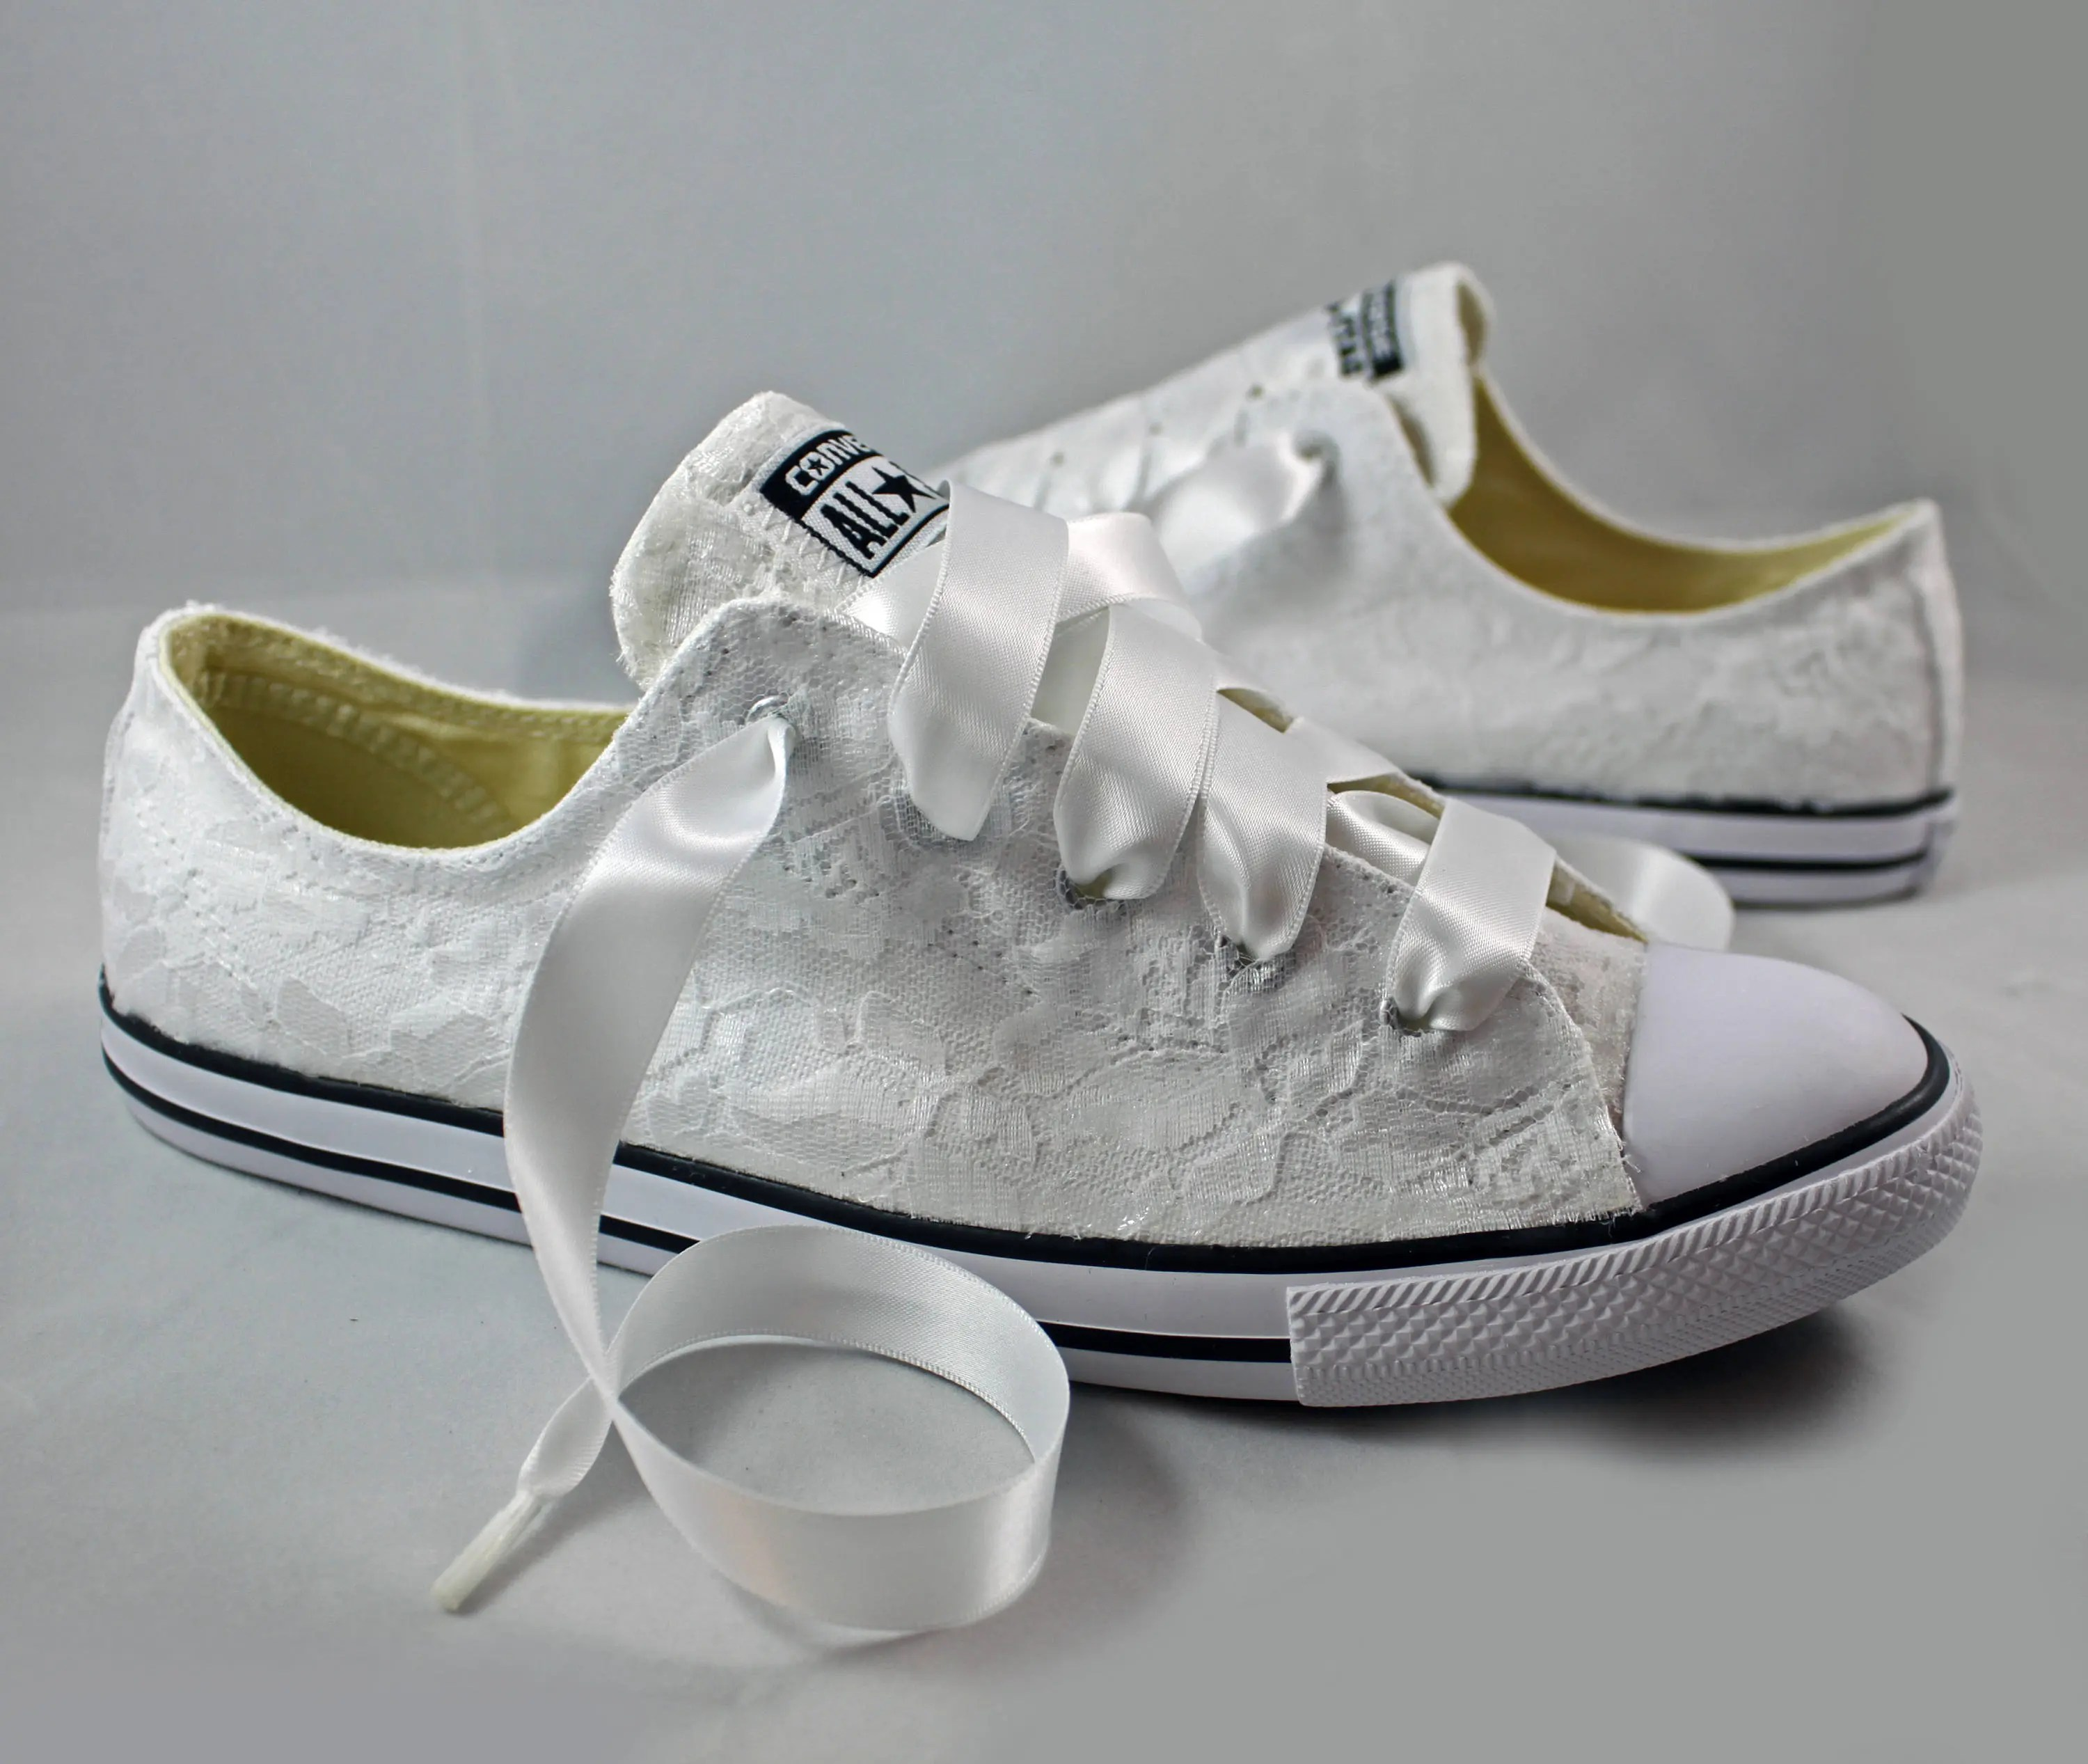 Hochzeits Sneaker Bridal Converses Lace Converse Wedding Tennis Shoes